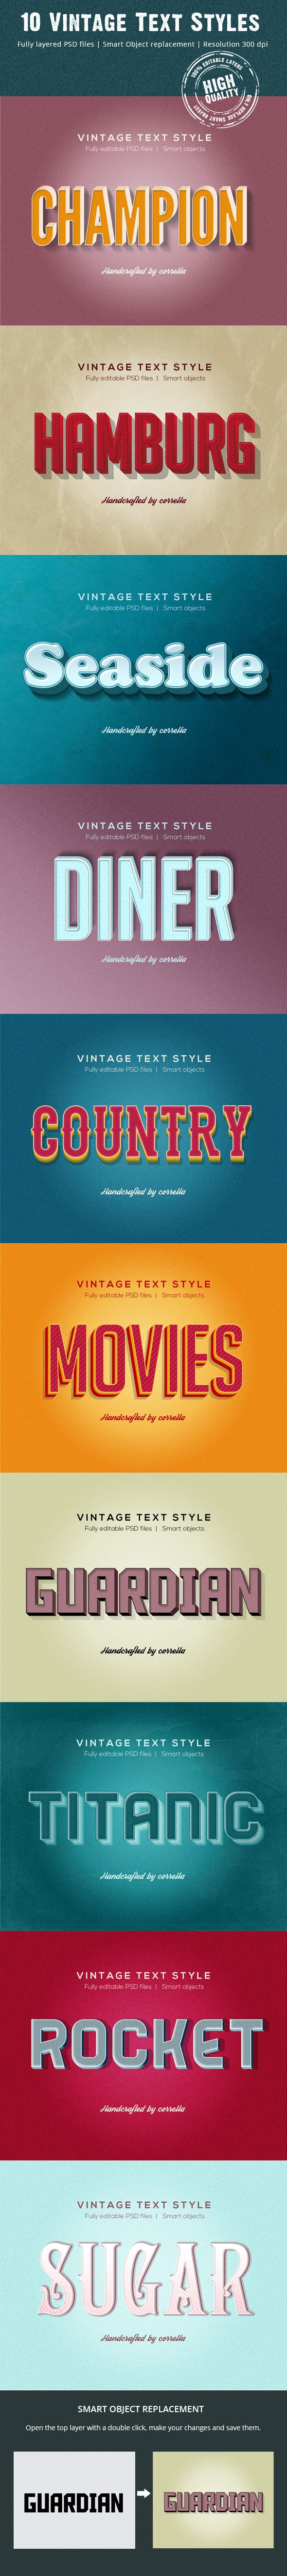 10 Vintage Text Styles - Text Effects Actions